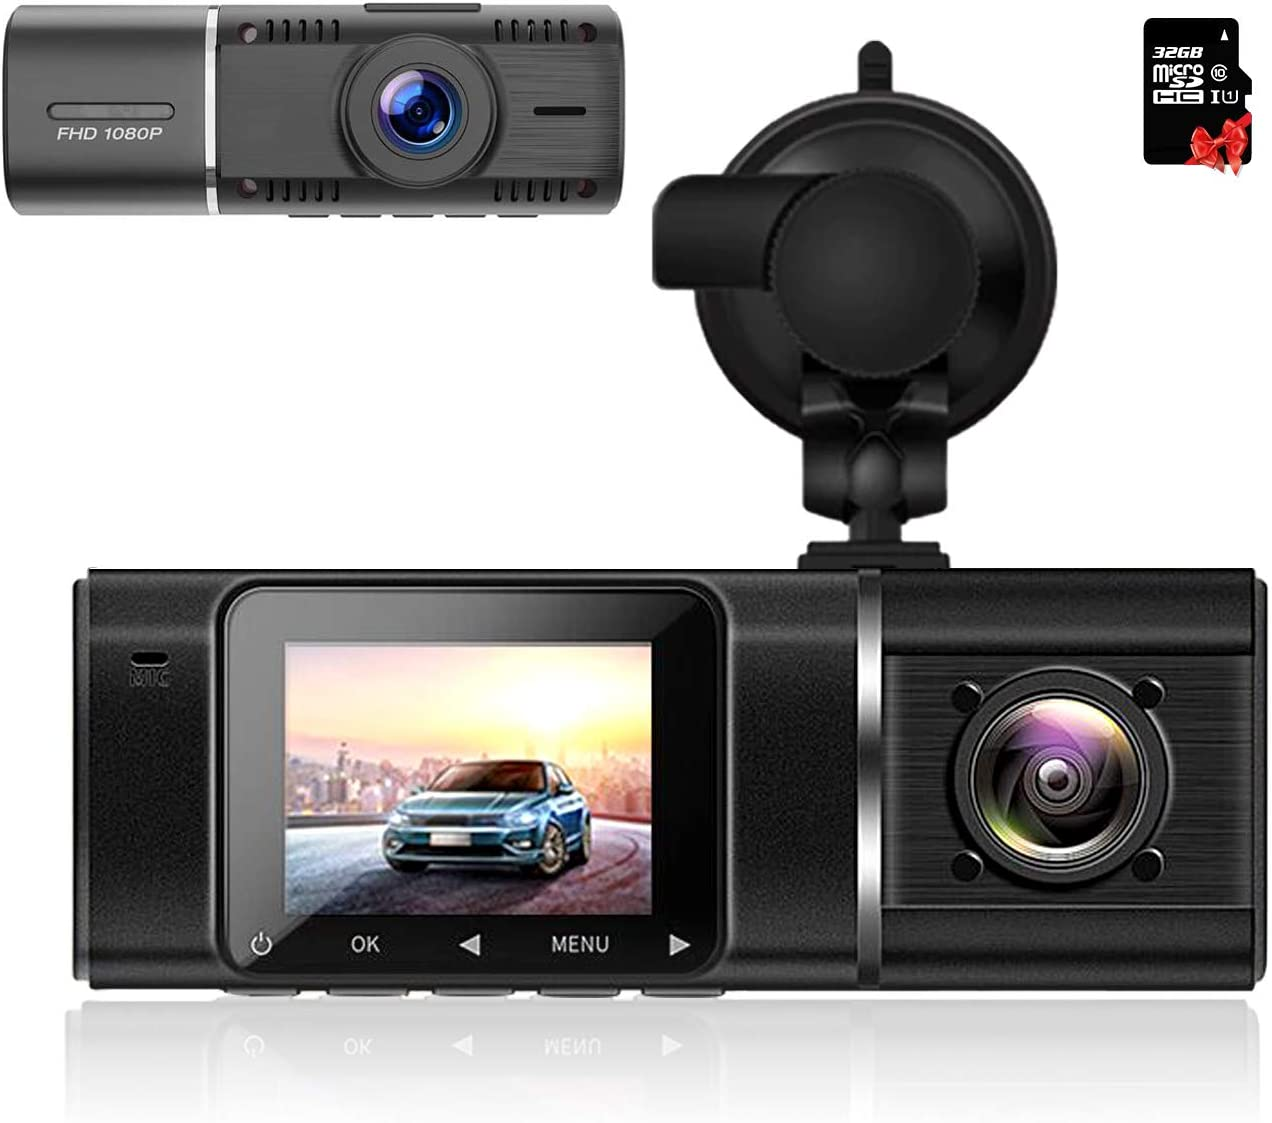 SendCord Dual Dash Cam Front and Rear with Night Vision for Taxi & Rideshare: Featuring 310° View, Parking Monitor, HDR, G-Sensor, Motion Detection -Car Camera - Dash Cam Front and Rear